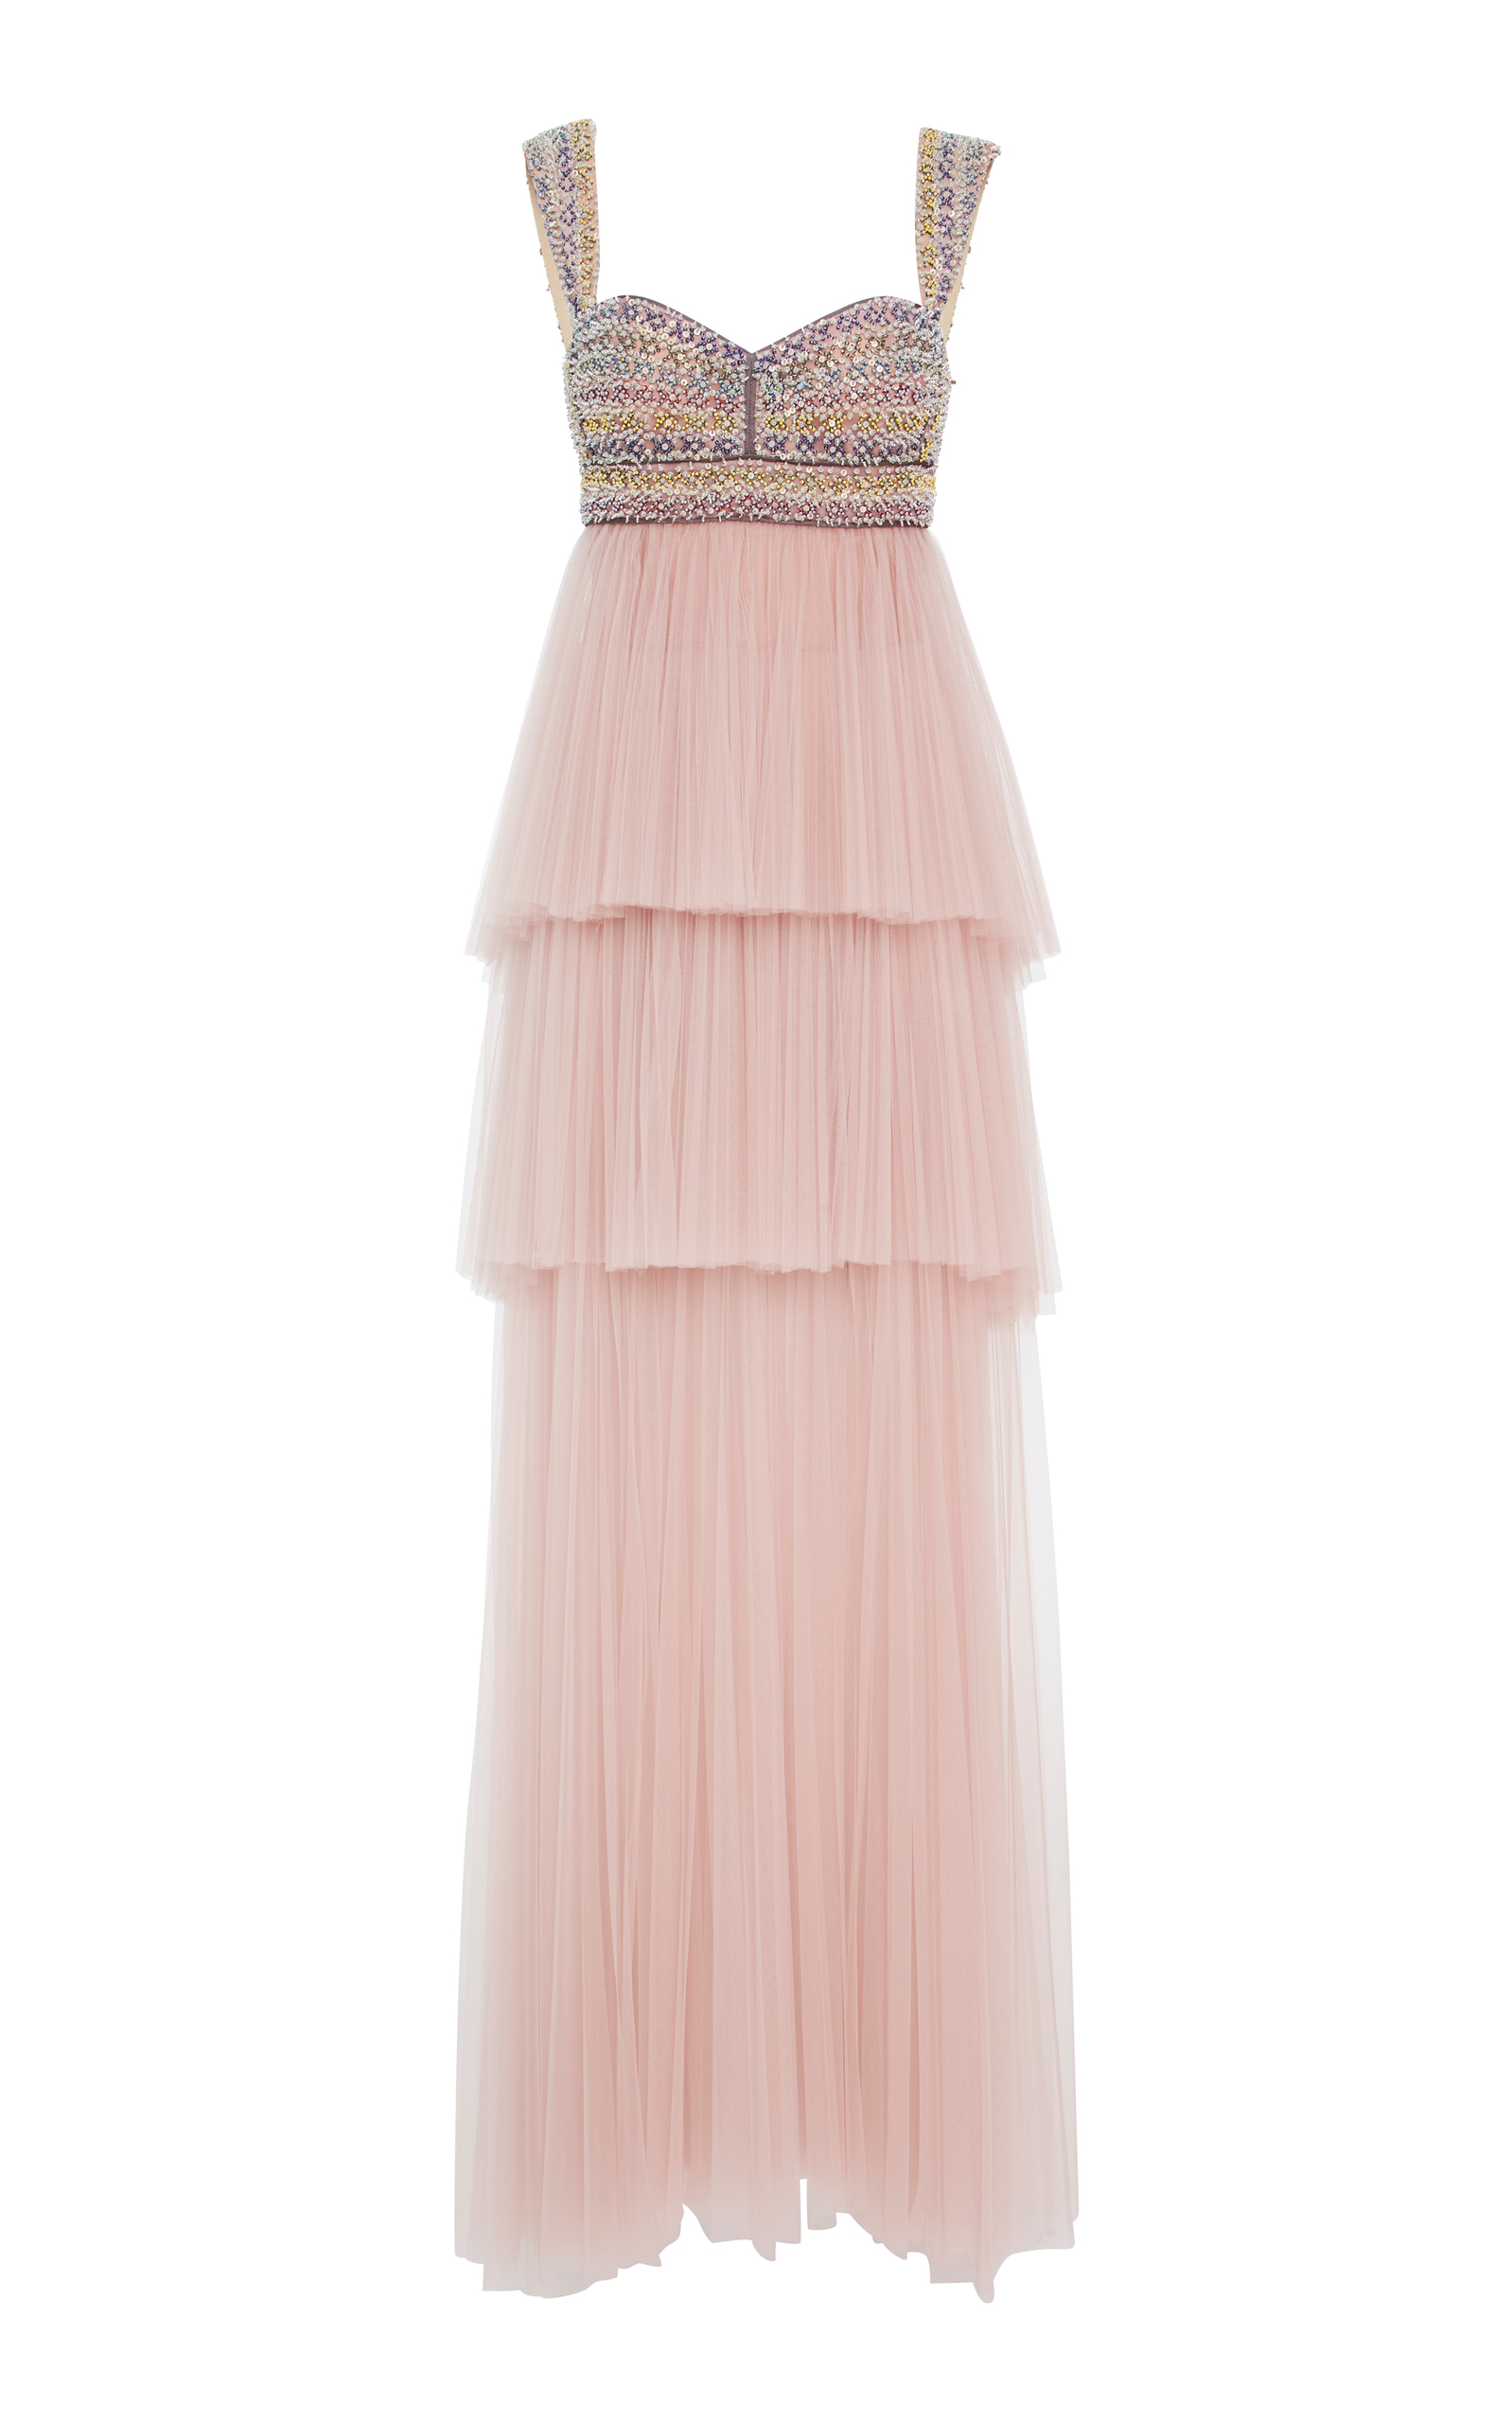 Women · J. Mendel; Embroidered Bodice Gown With Tiered Tulle Skirt. CLOSE.  Loading